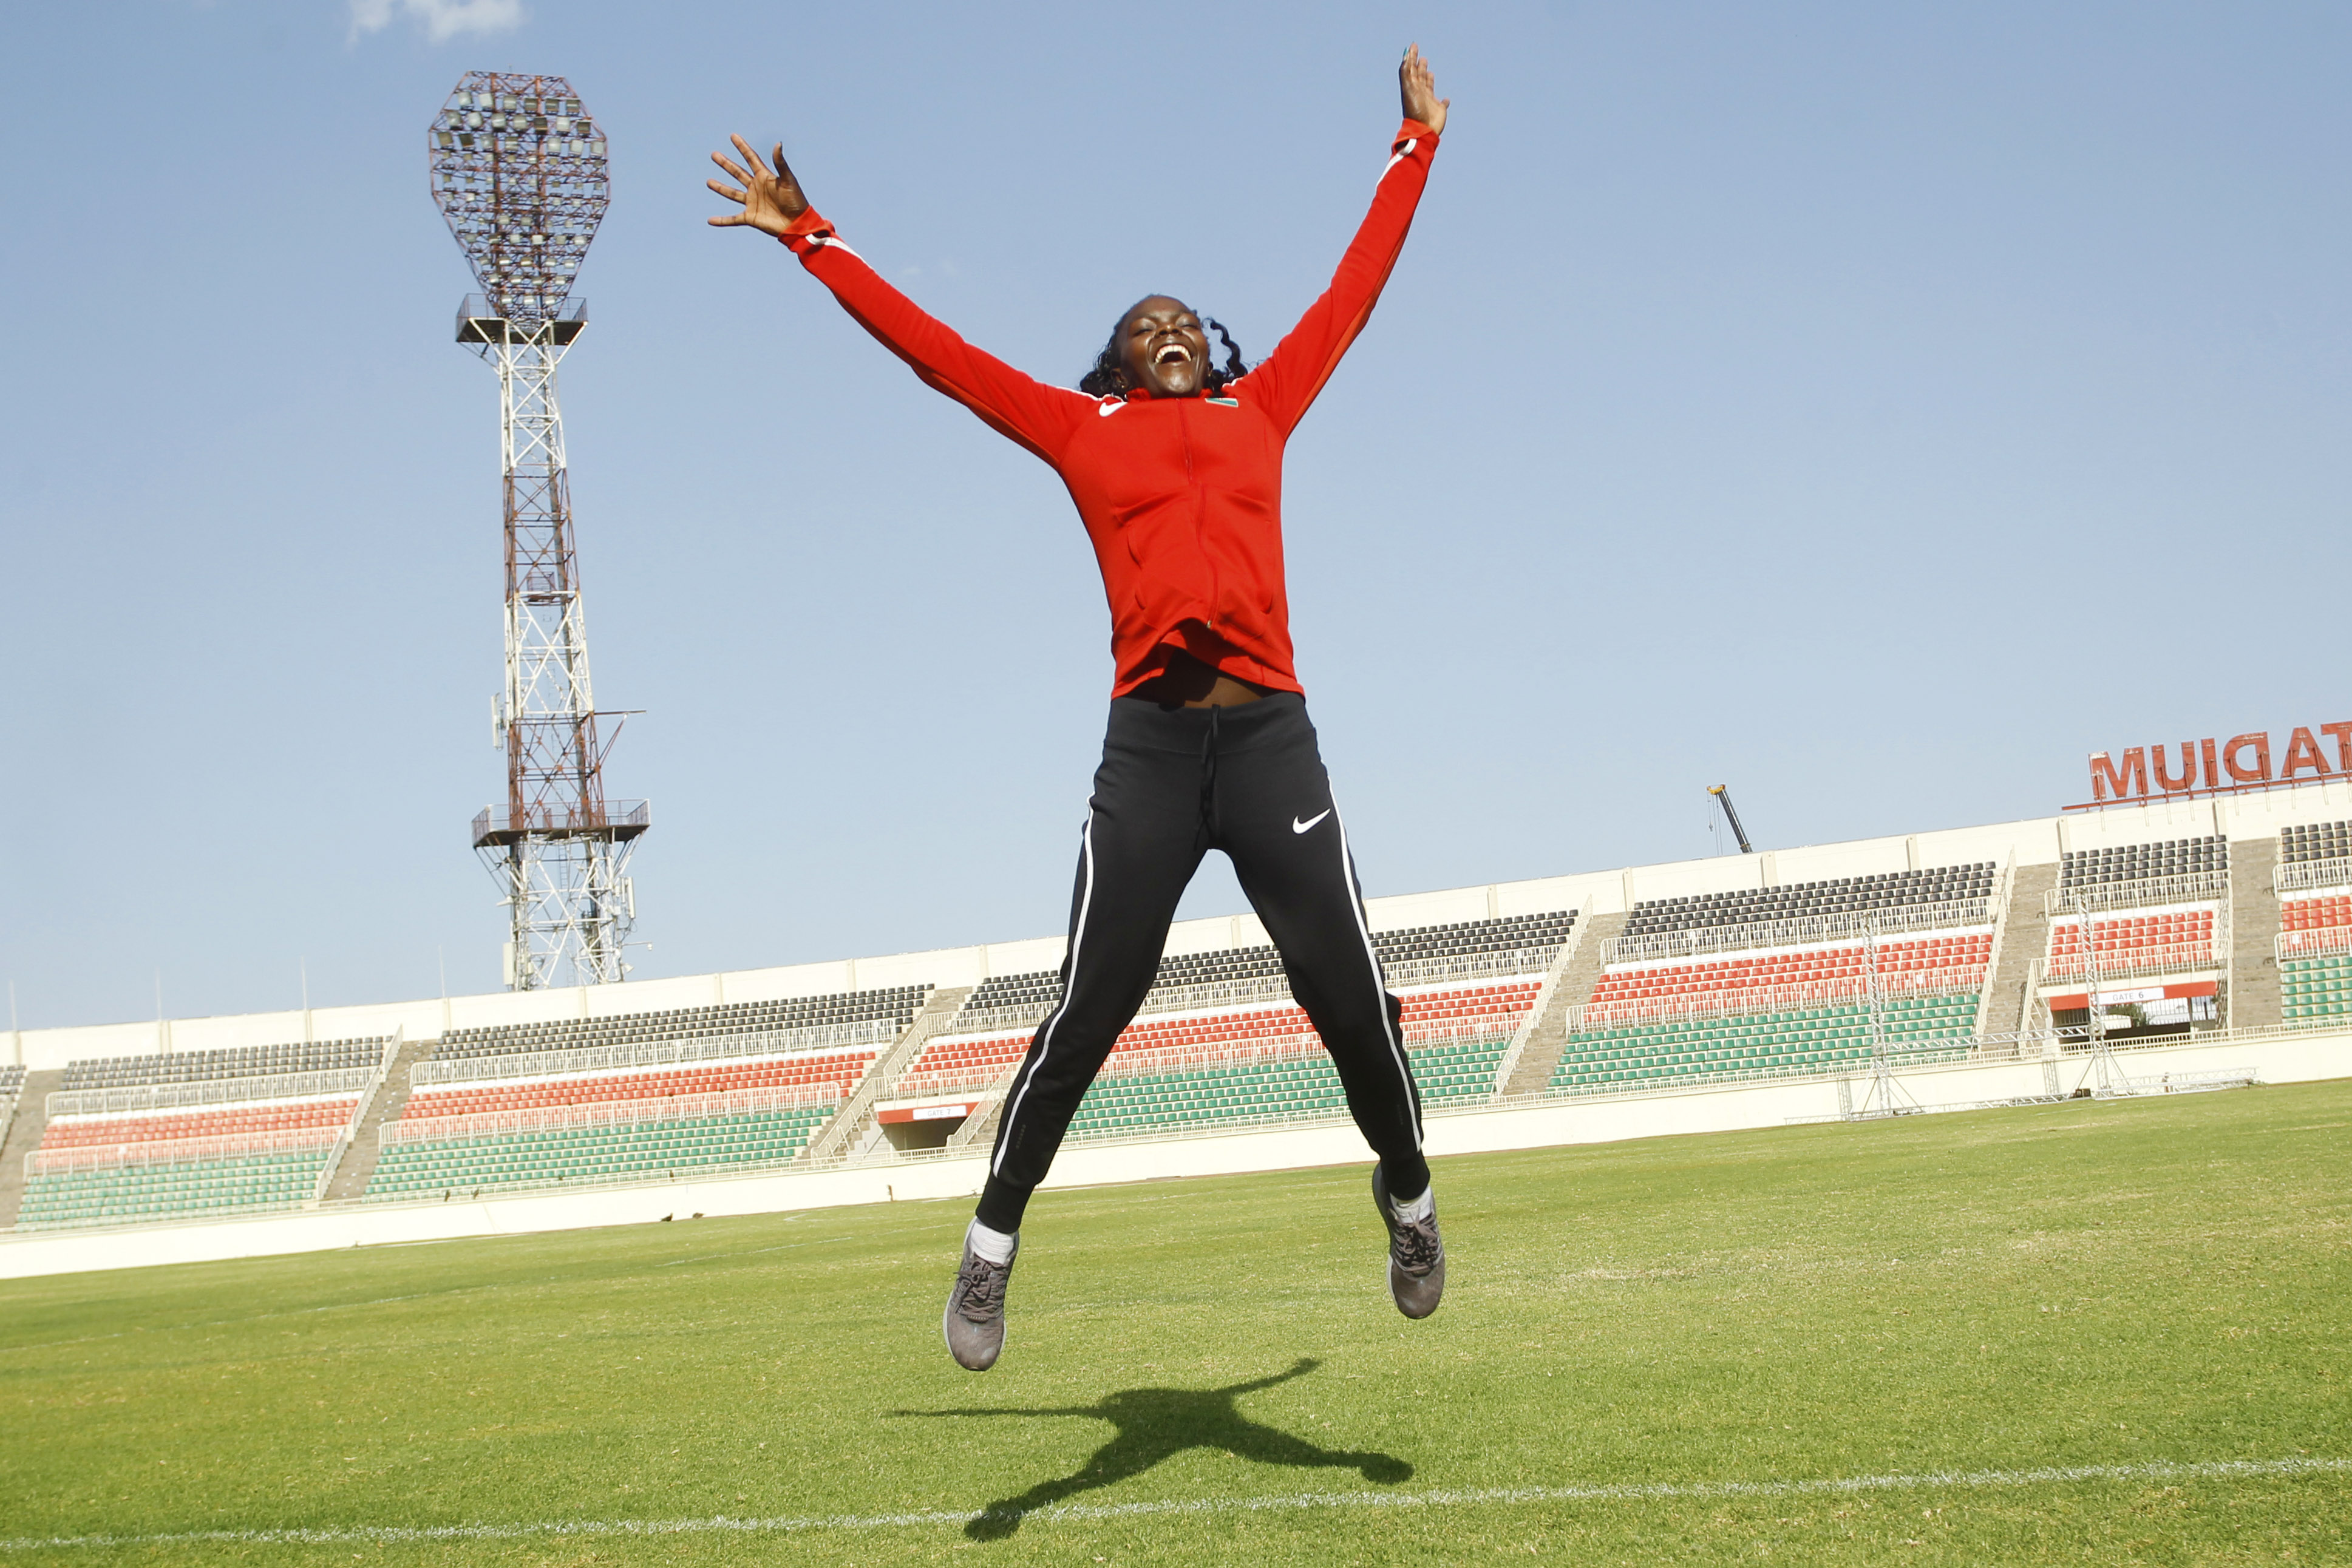 PHOTOS: The past converges with the present as Athletics Kenya marks 70 years